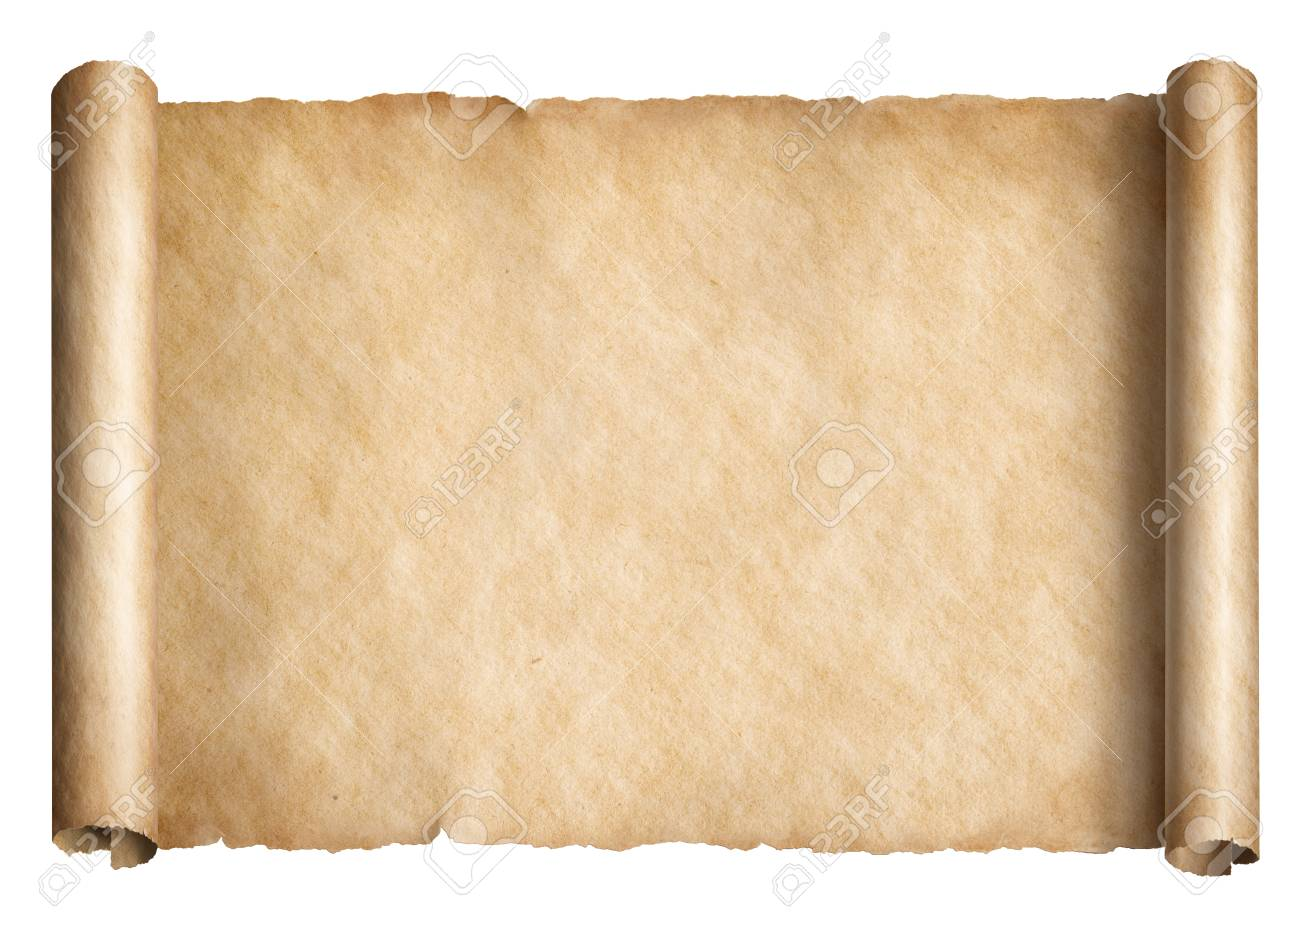 old paper scroll or parchment isolated horizontally oriented stock